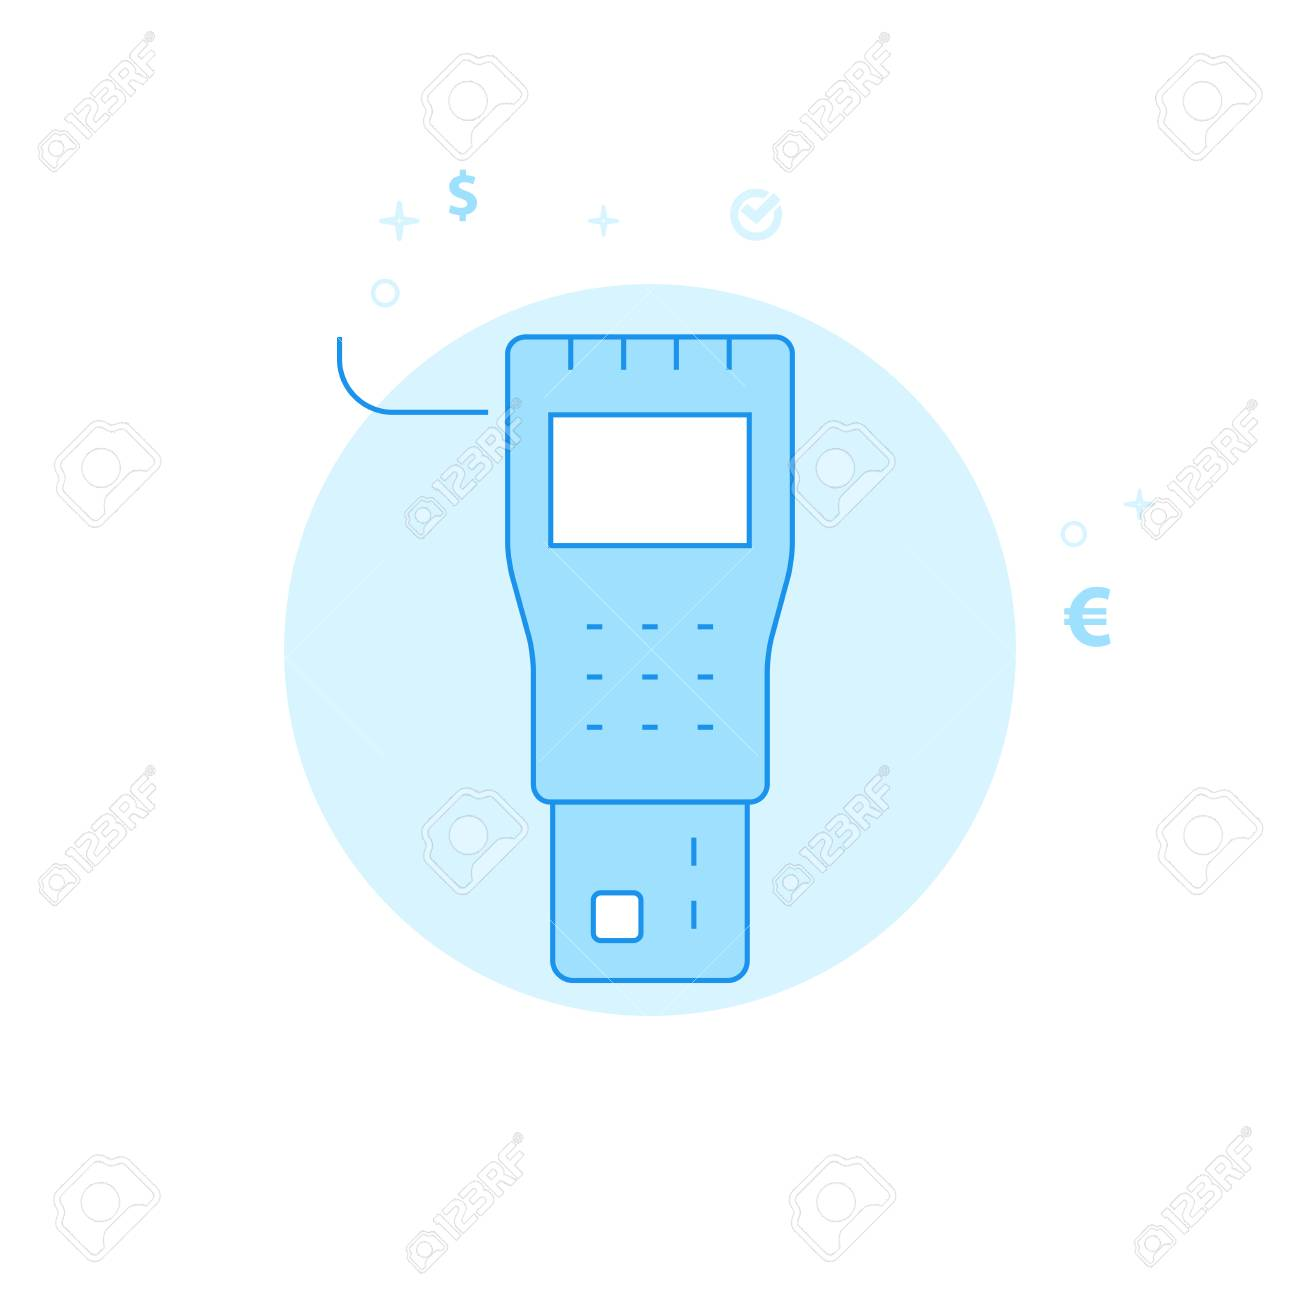 Payment Terminal Flat Vector Icon  Money and Finance Illustration